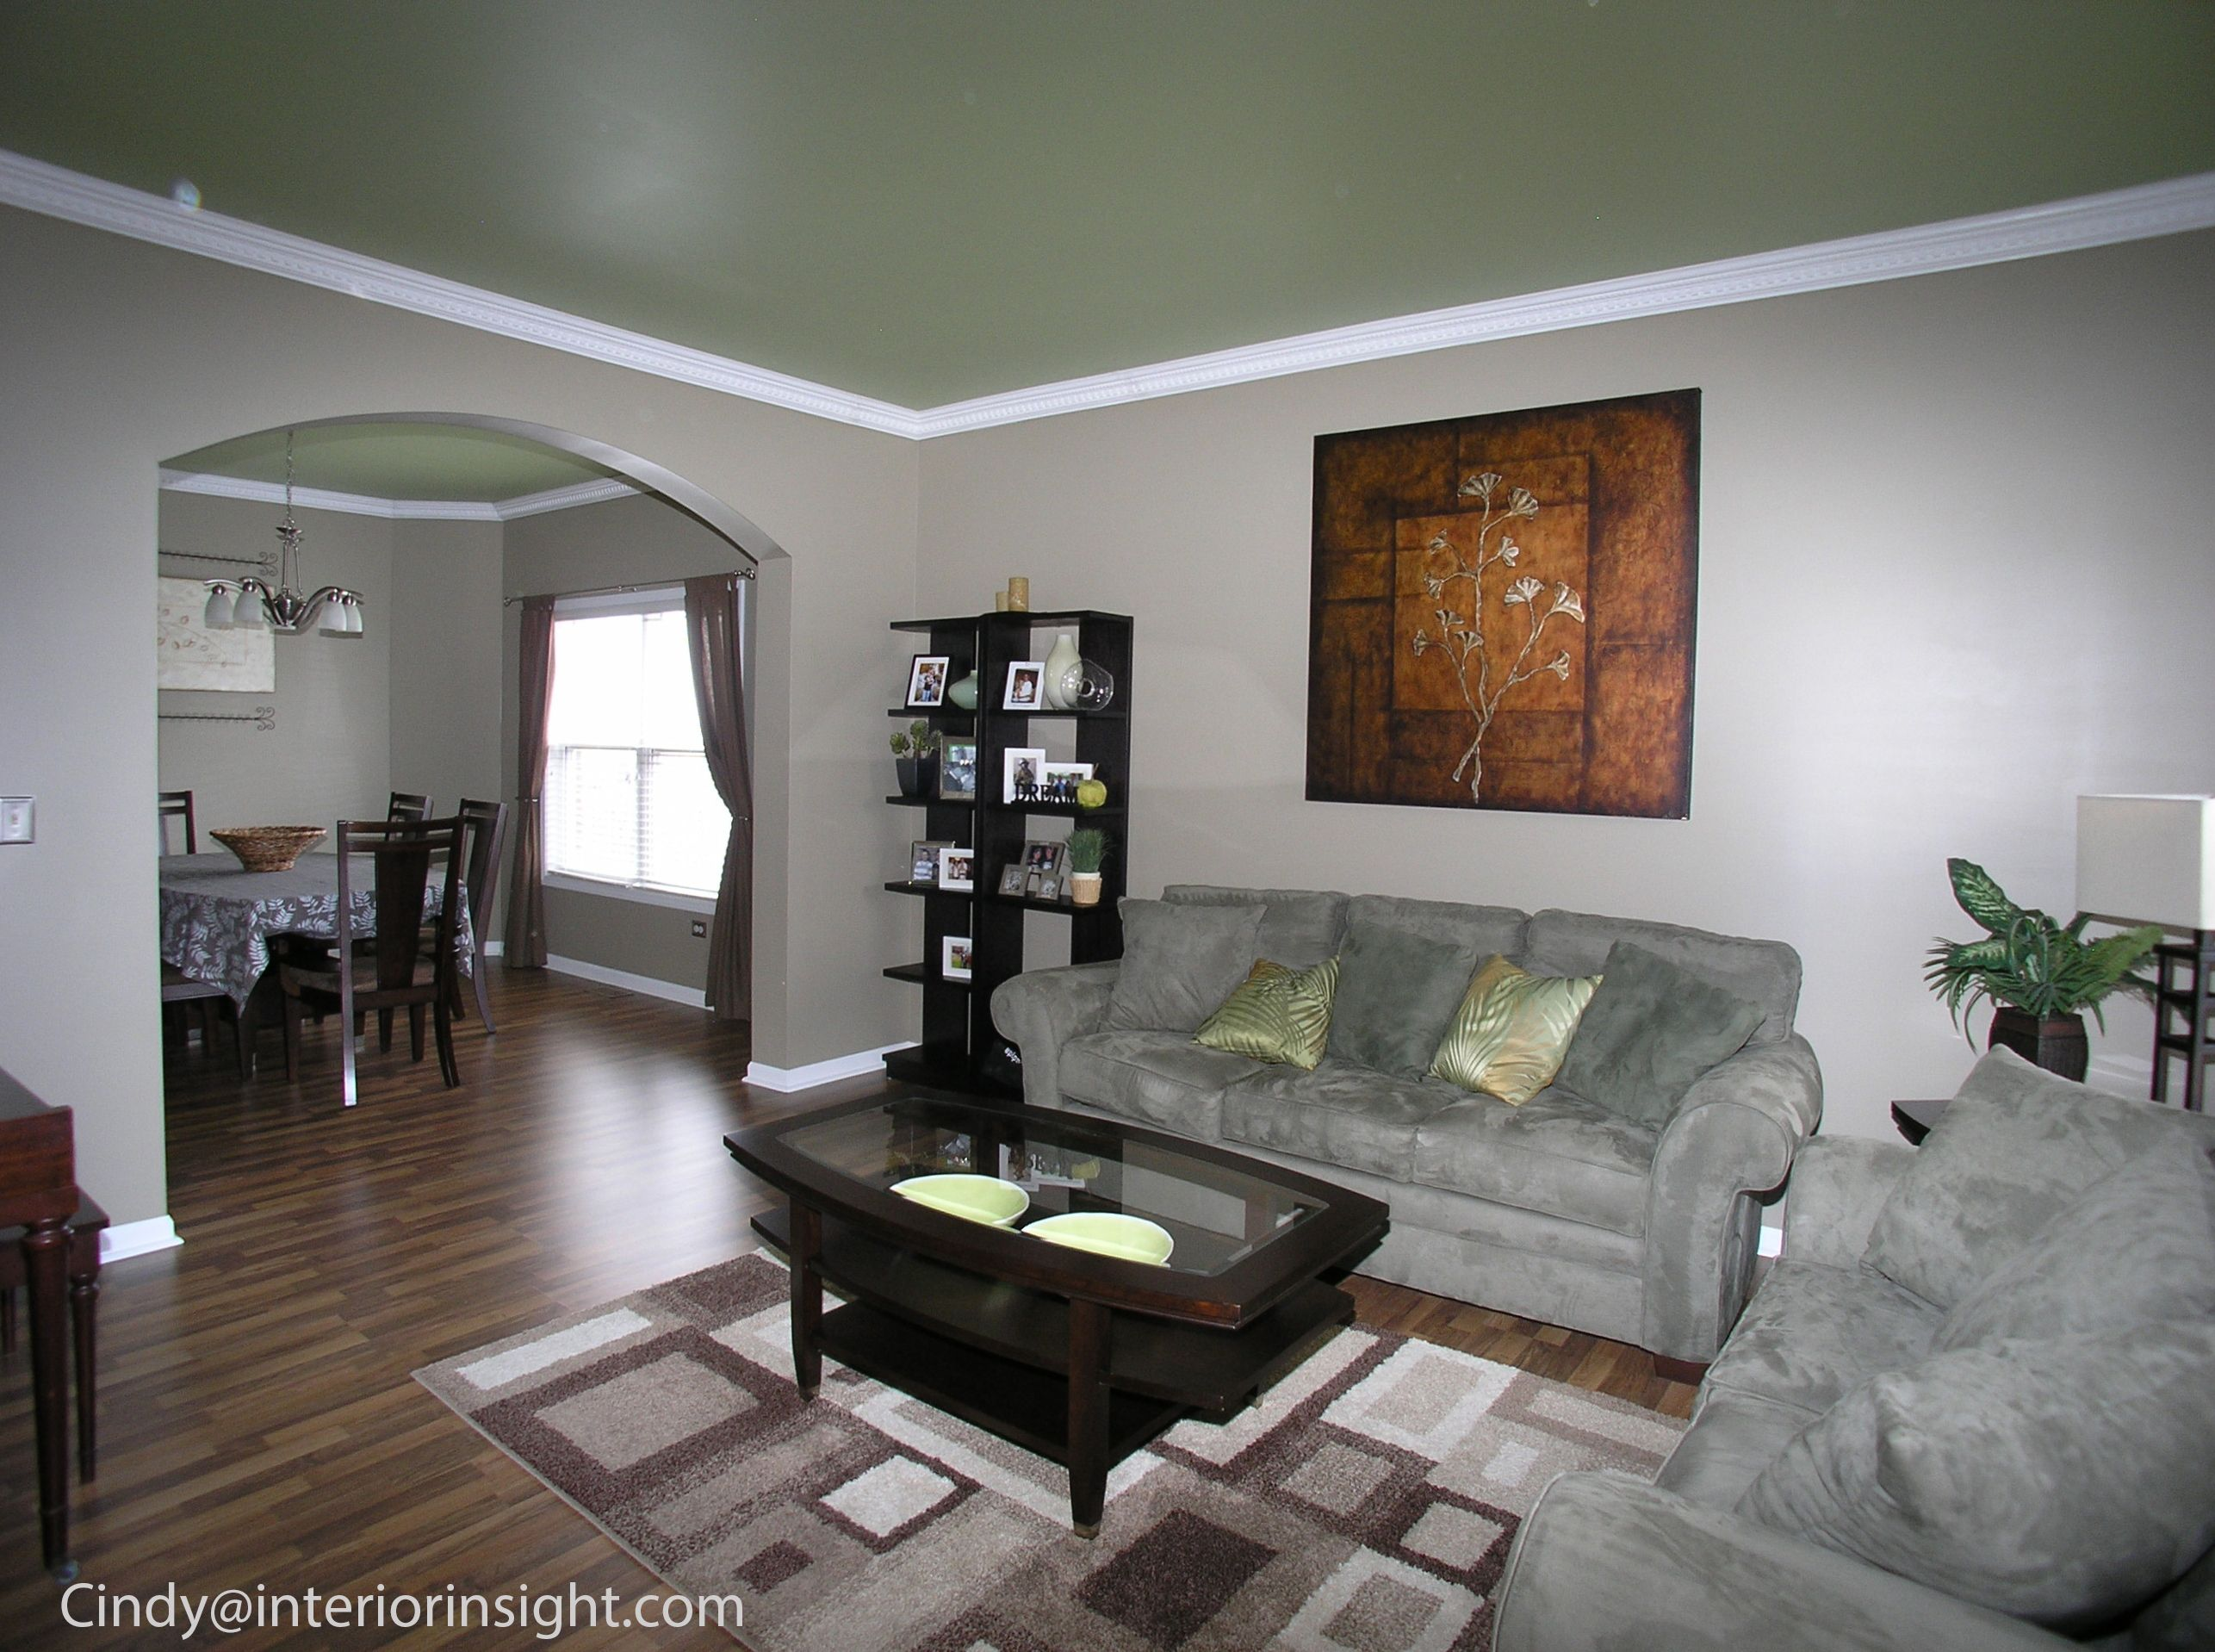 Bright Bold Green Ceilings Play Off The Light Grey Walls In This Living Room Dining